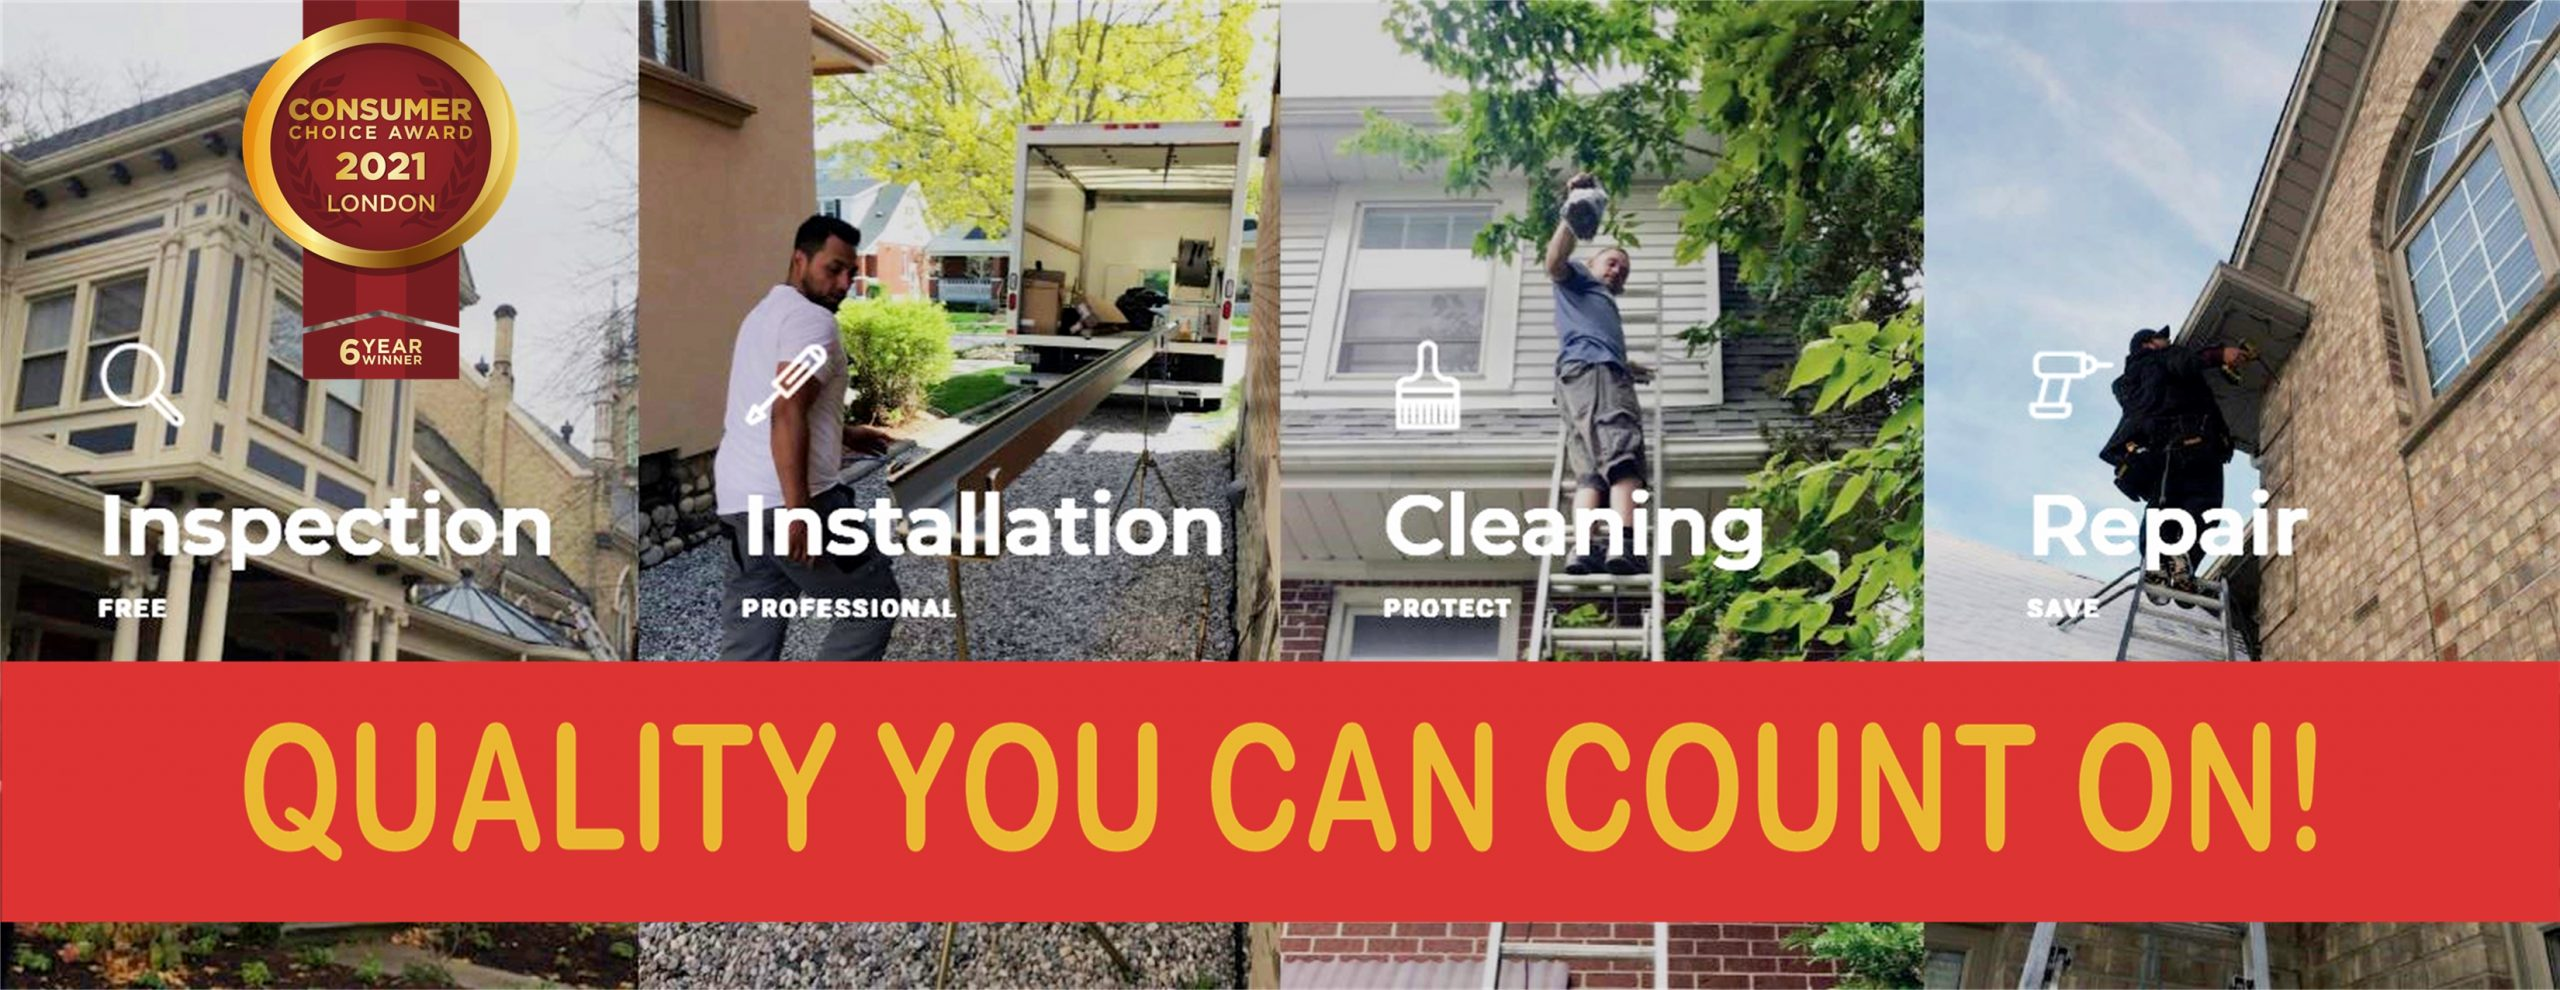 Collage of images including home with eavestrough titled Inspection, worker unloading custom eavestrough titled installation, worker clearing debris from eavestrough titled cleaning, and working fixing soffit and fascia titled repair. Red banner over top that says in gold letters Quality you can count on